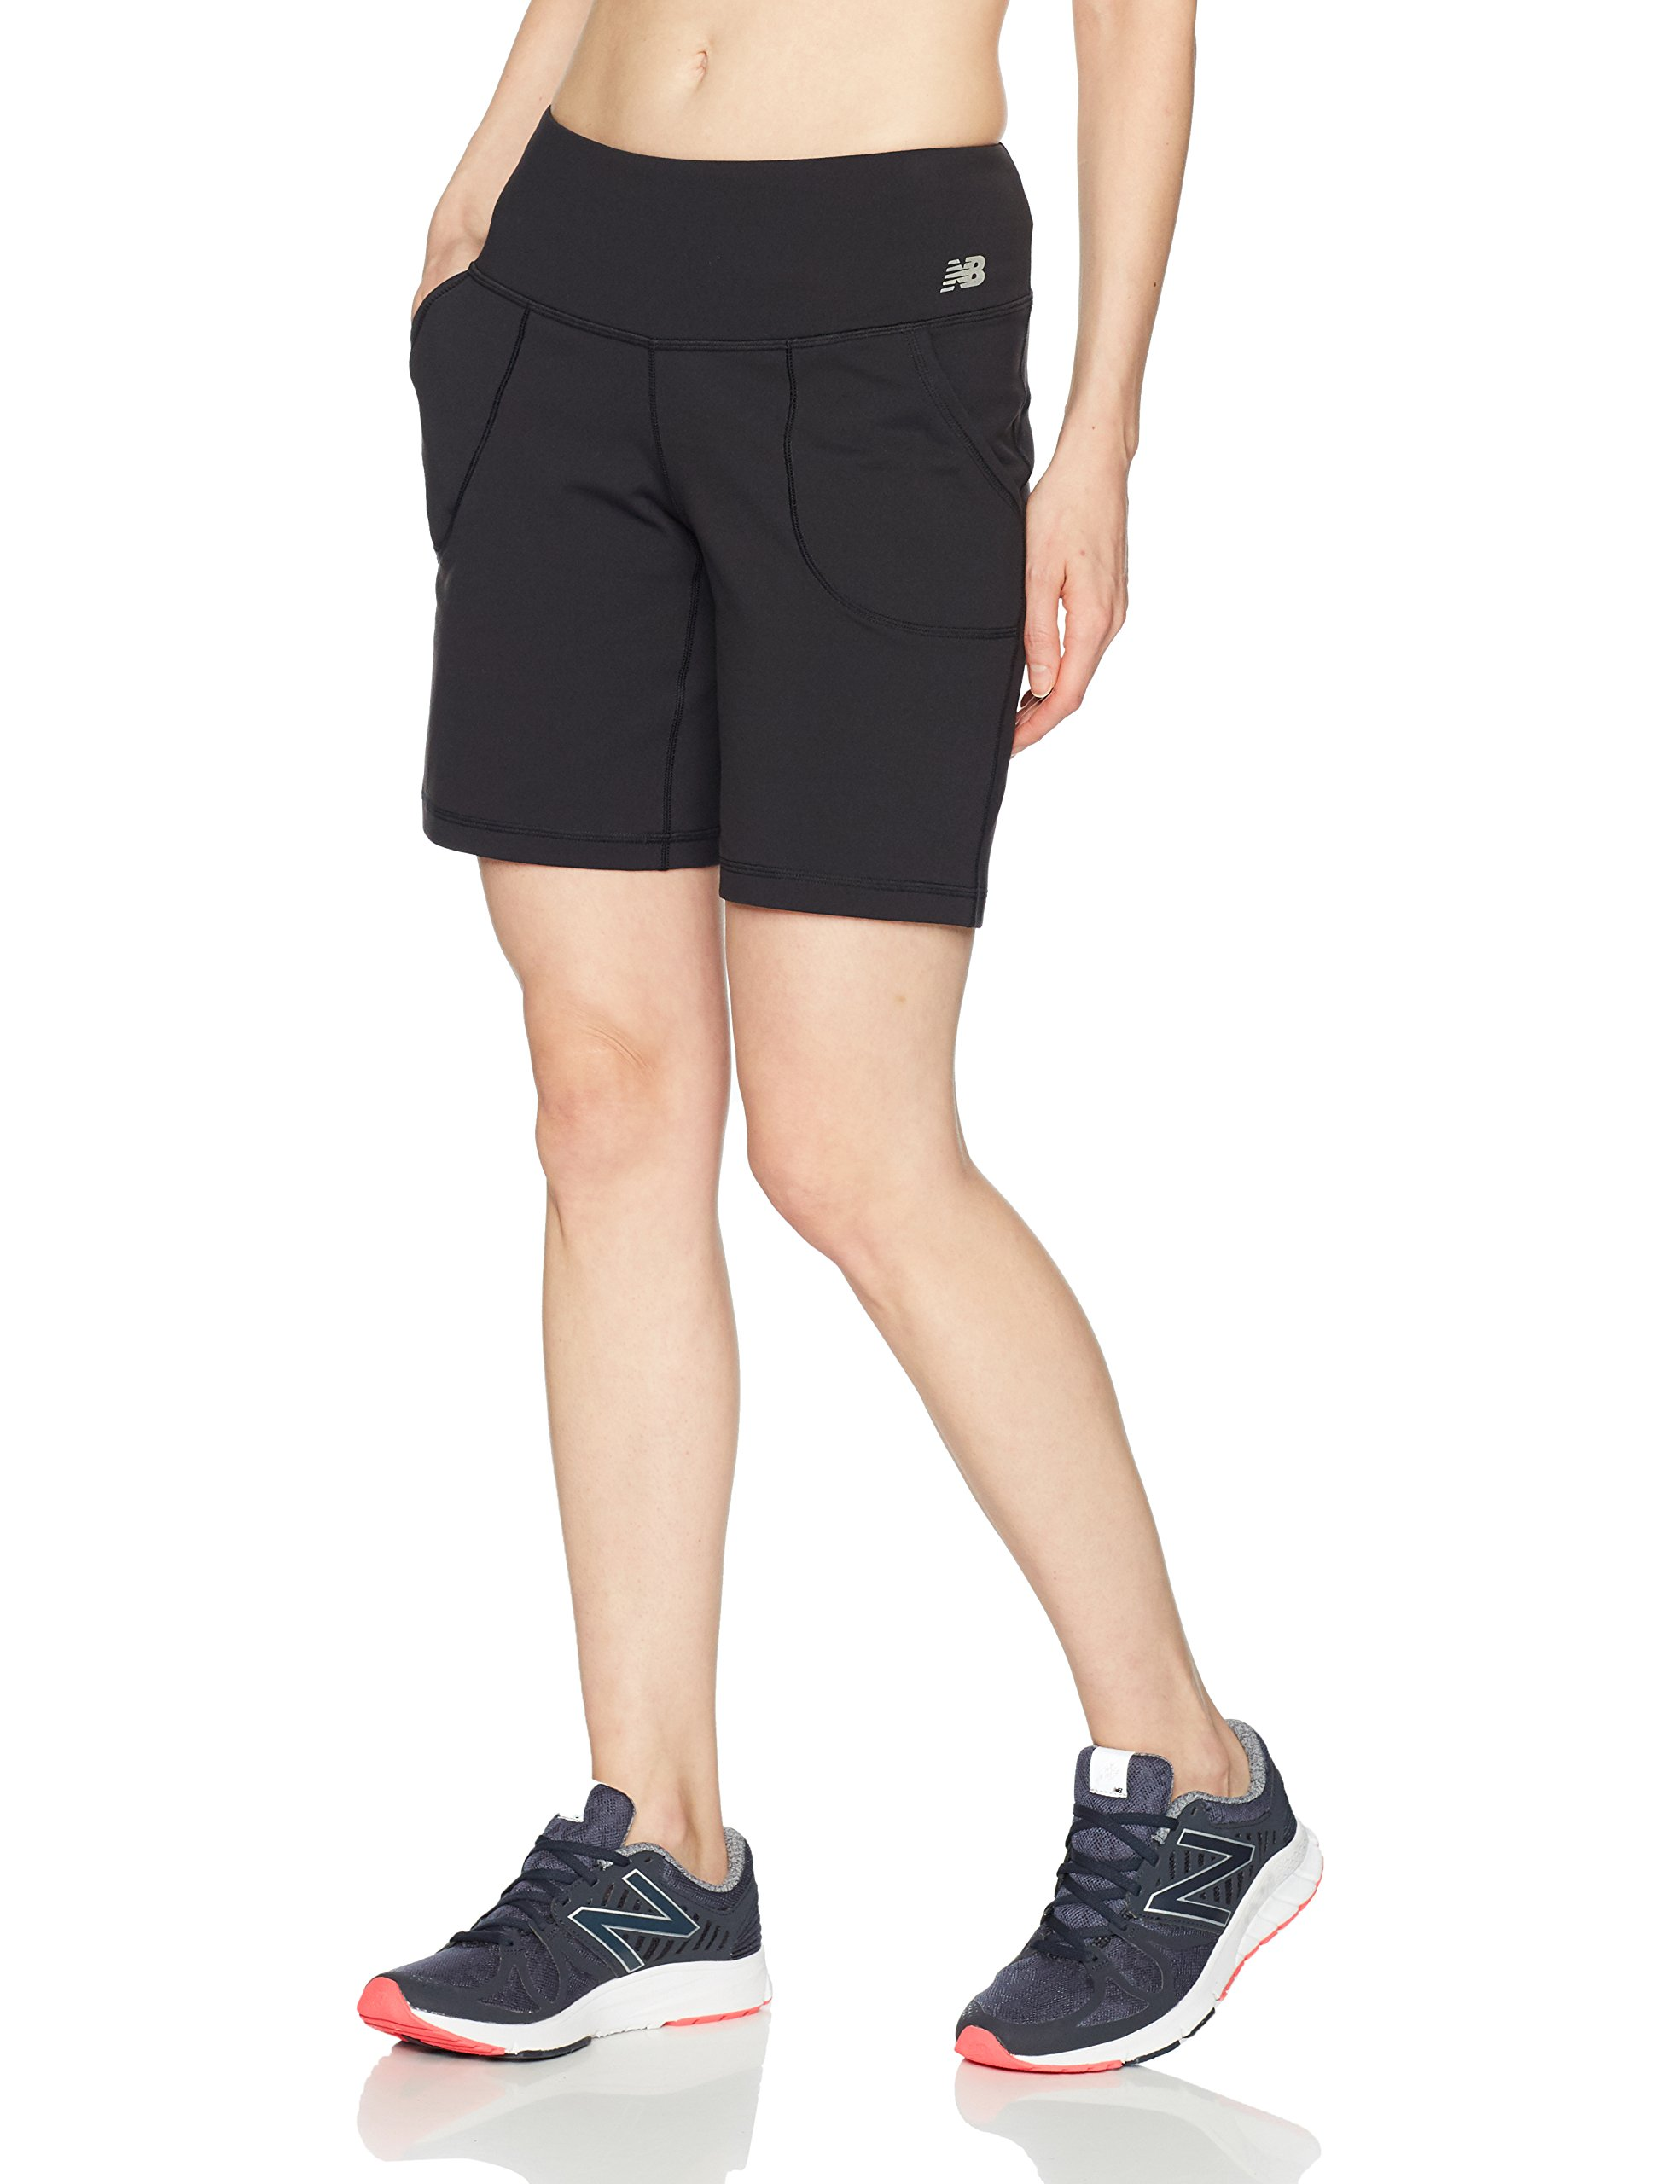 New Balance Women's Premium Performance 8-Inch Shorts, Black, Large by New Balance